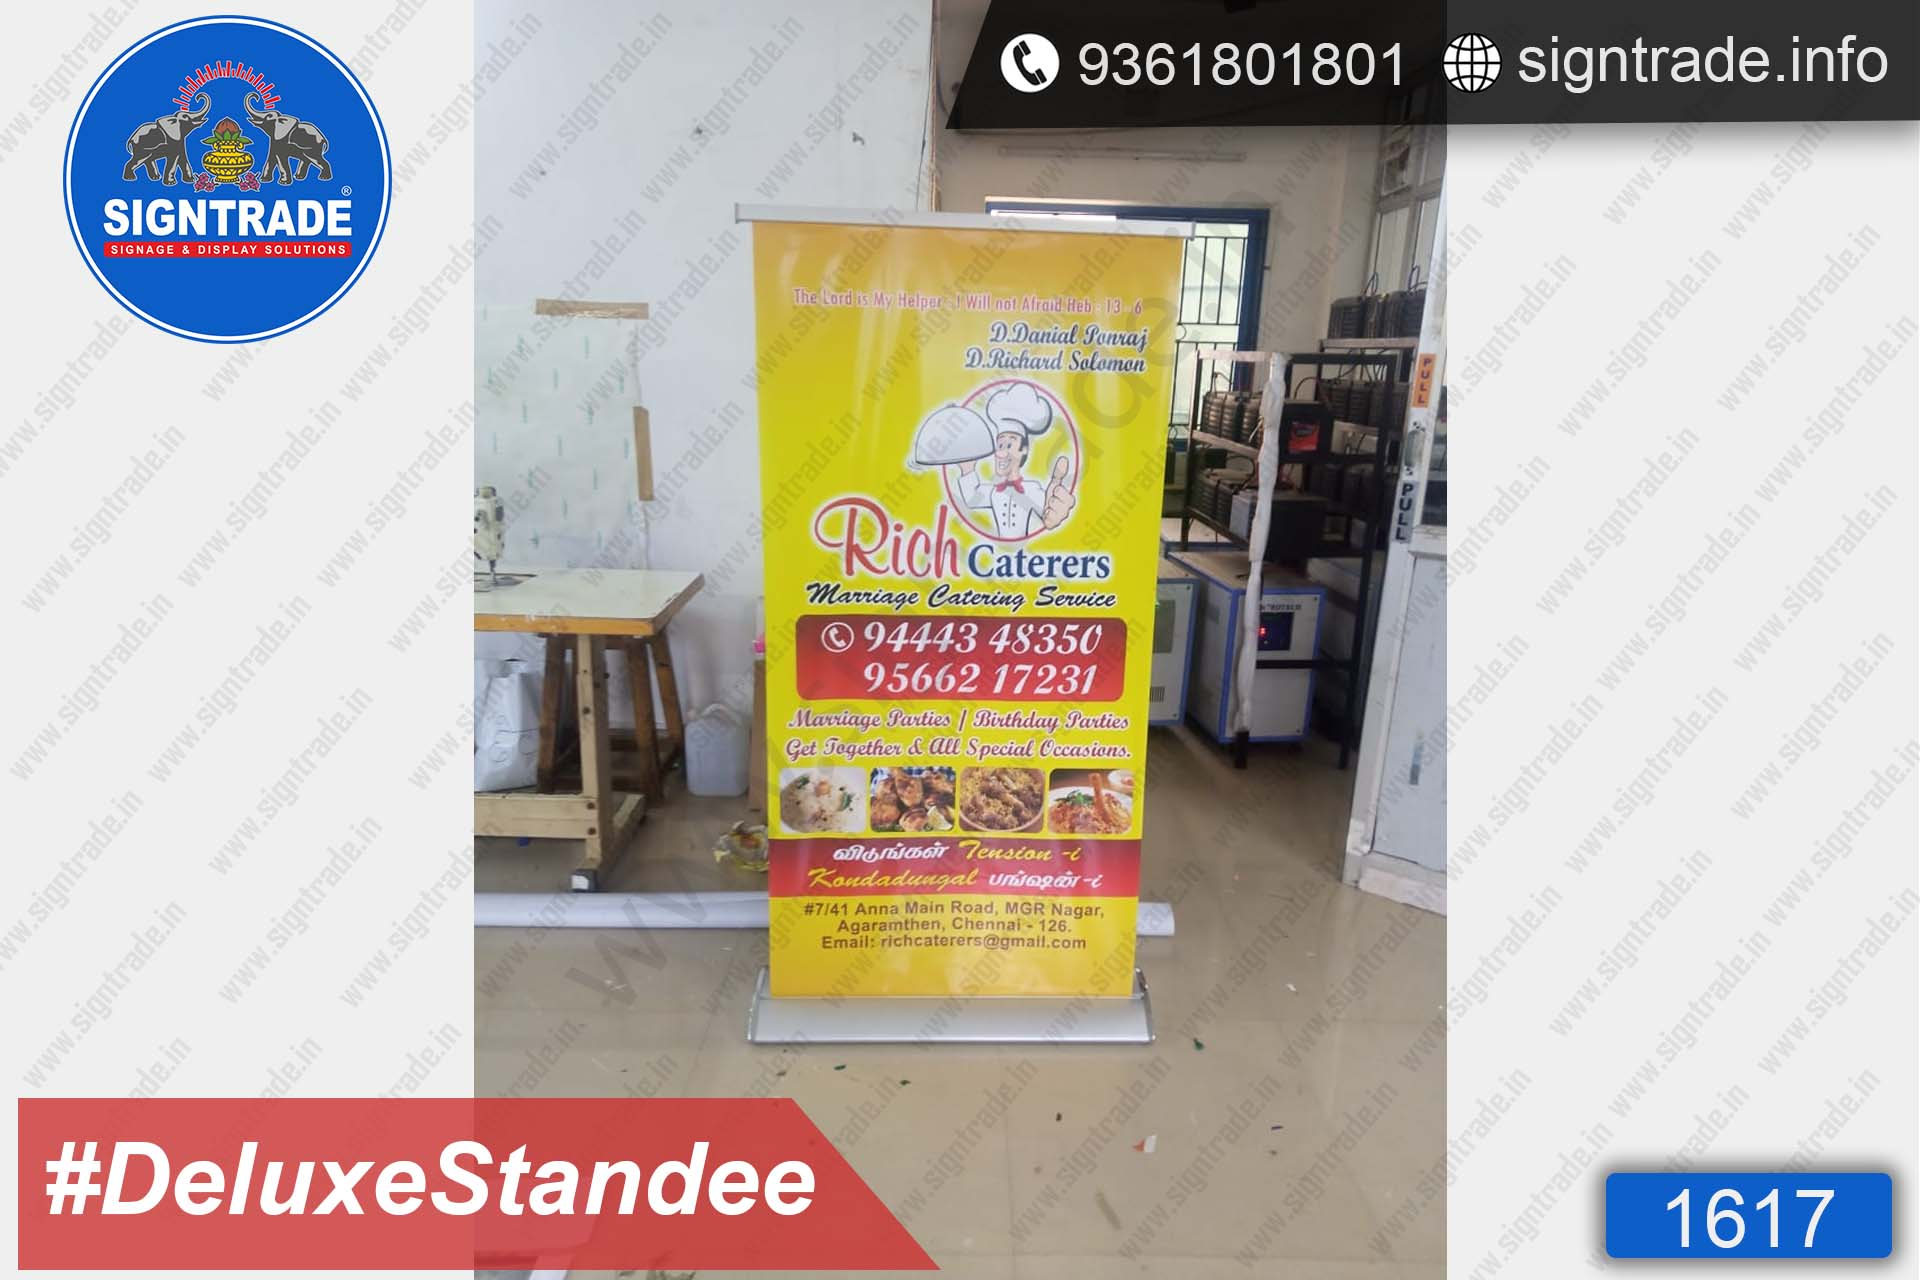 Rich Caterers - Deluxe Rollup Banner Stand - SIGNTRADE - Deluxe Rollup Banner Stand Manufactures in Chennai